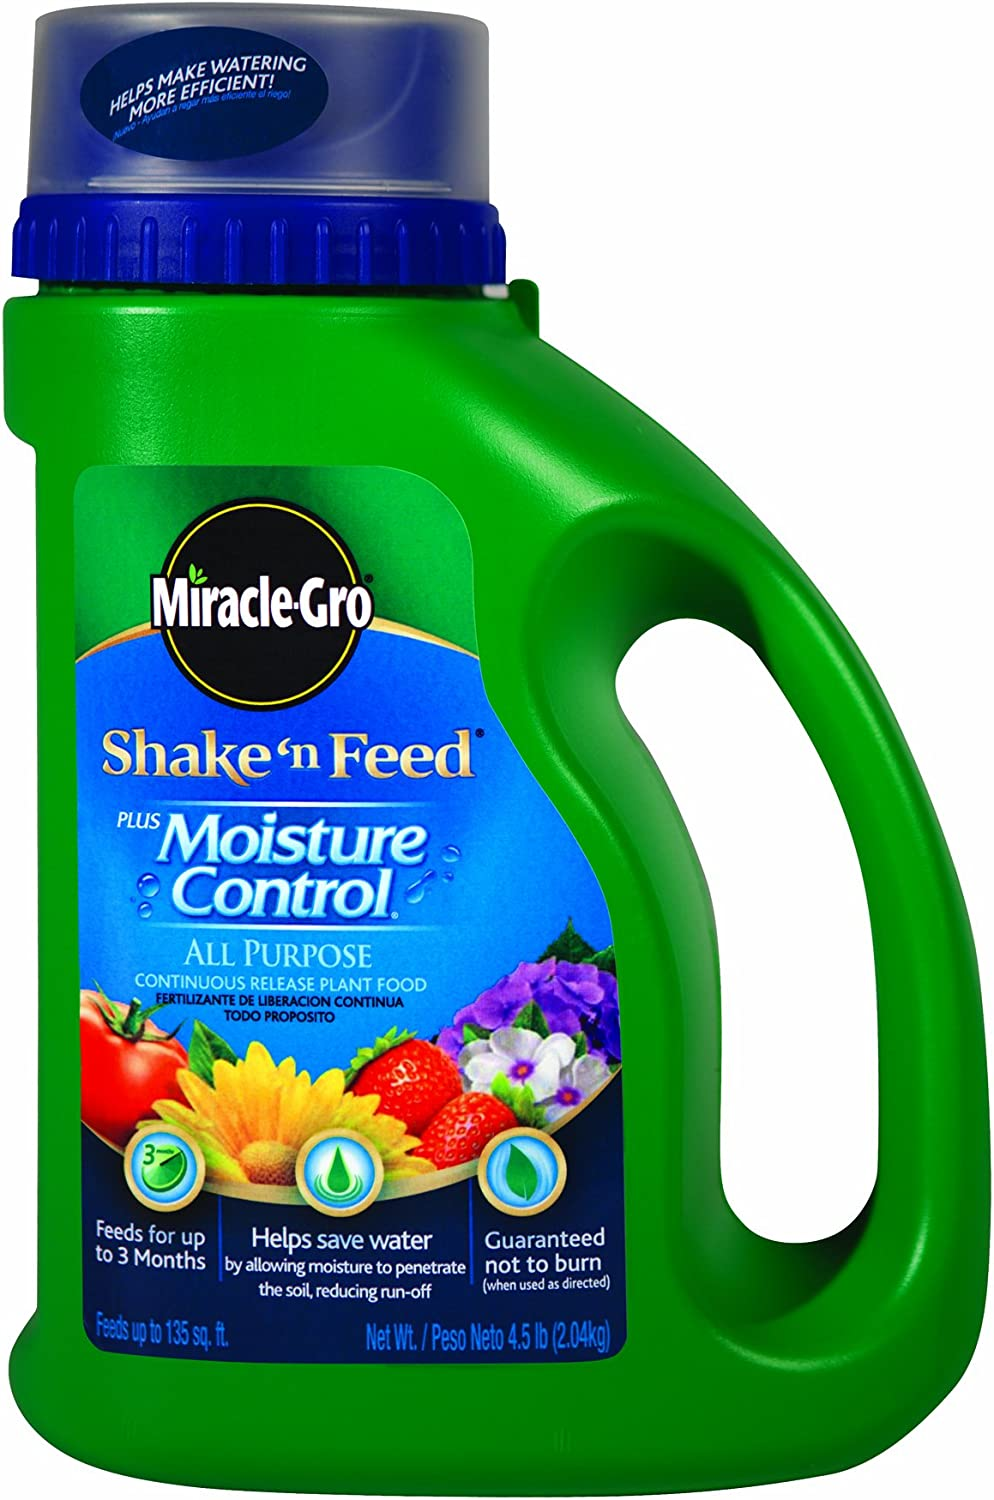 Miracle-Gro 100923 Shake 'n Feed All Purpose Continuous Release Plant Food Plus Moisture Control, 4.5-Pound (Slow Release Plant Fertilizer)